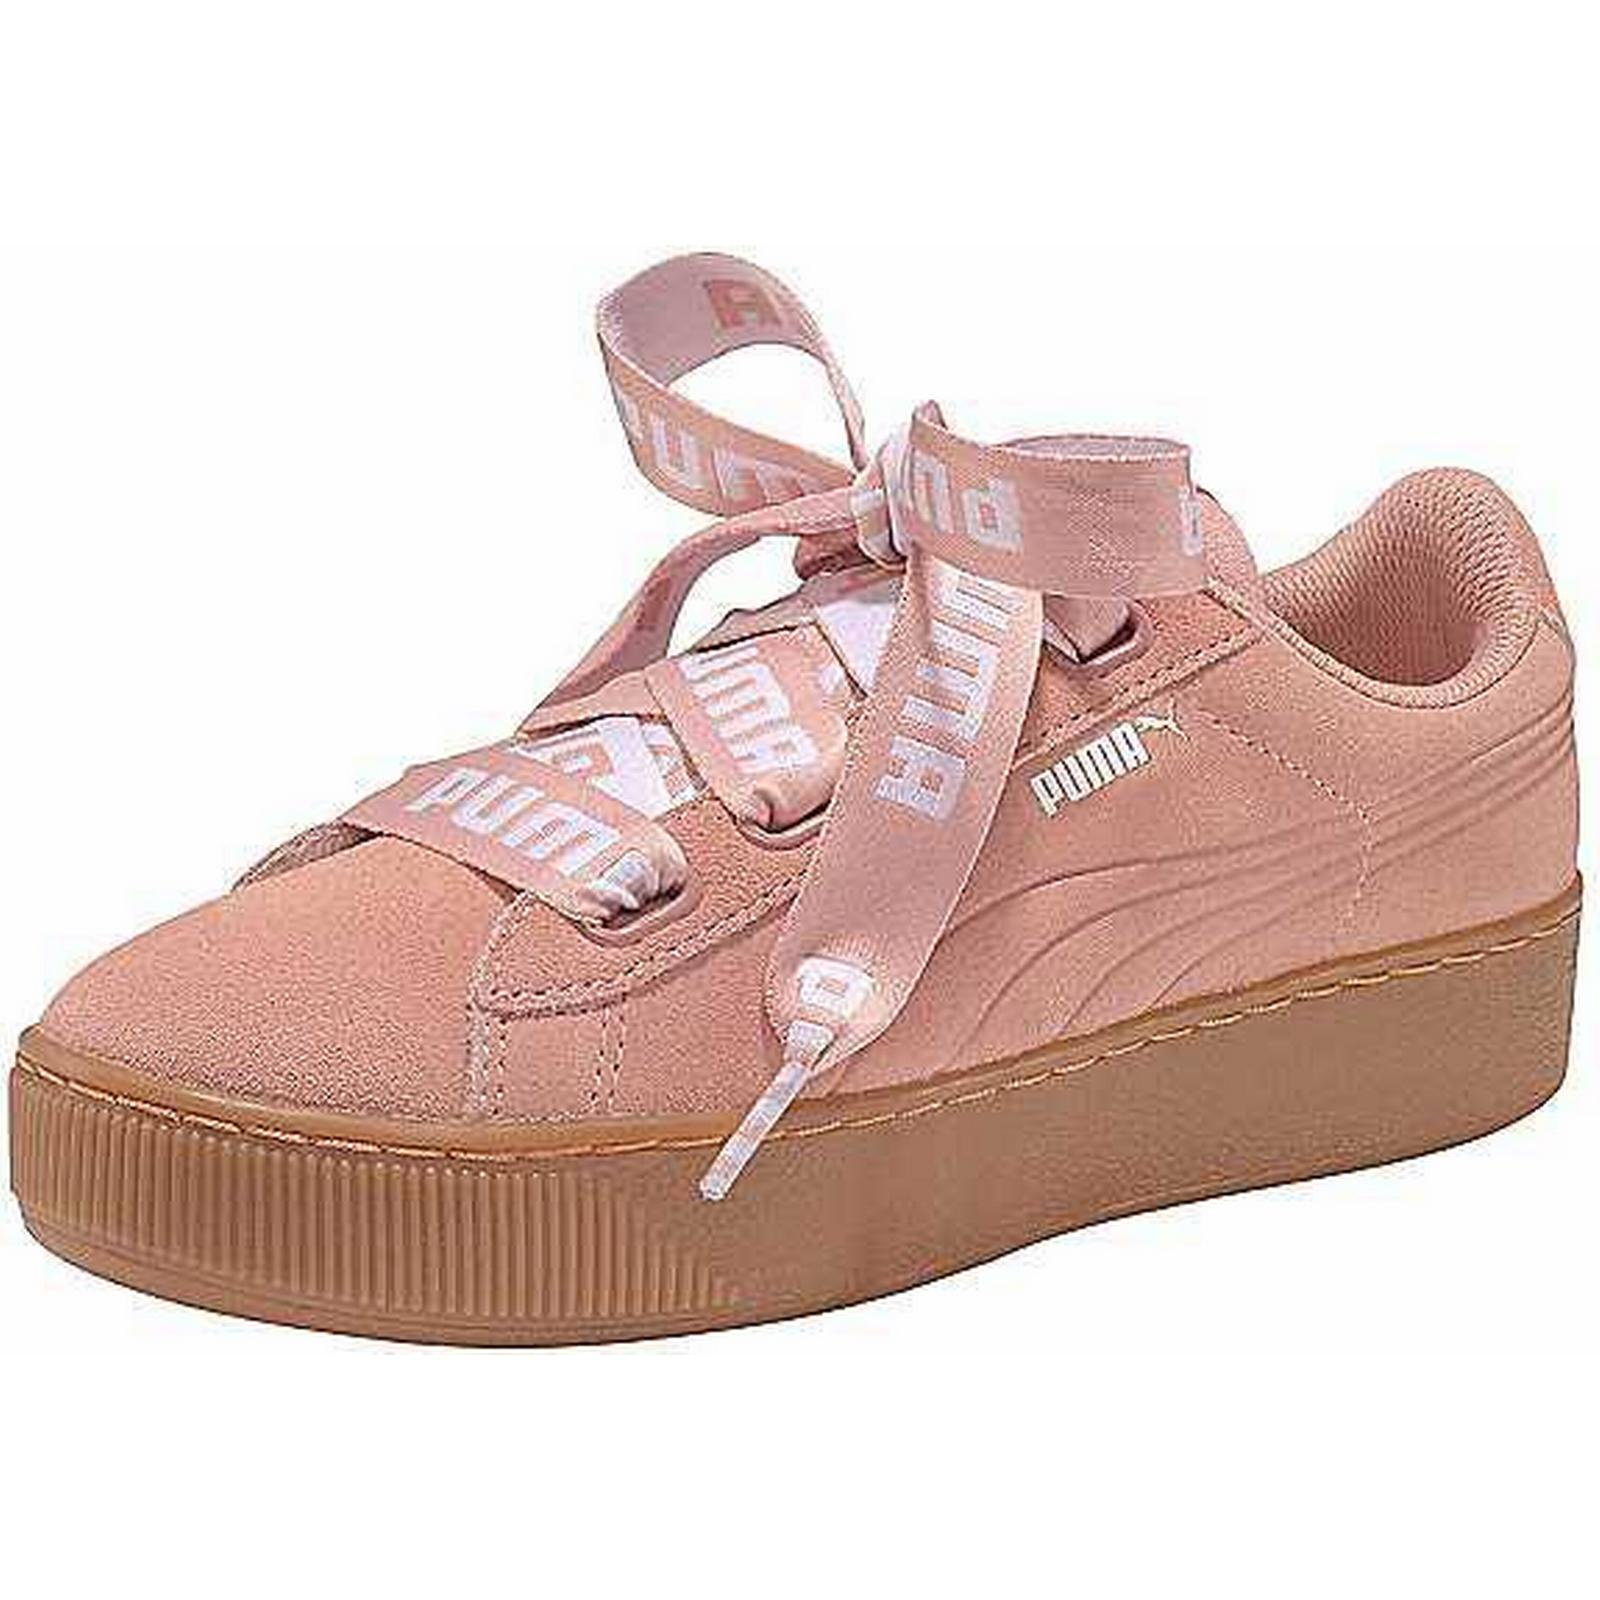 Puma Trainers 'Vicky Platform Ribbon Bold' Trainers Puma by Puma:Gentleman/Lady: Complete specifications c21c31